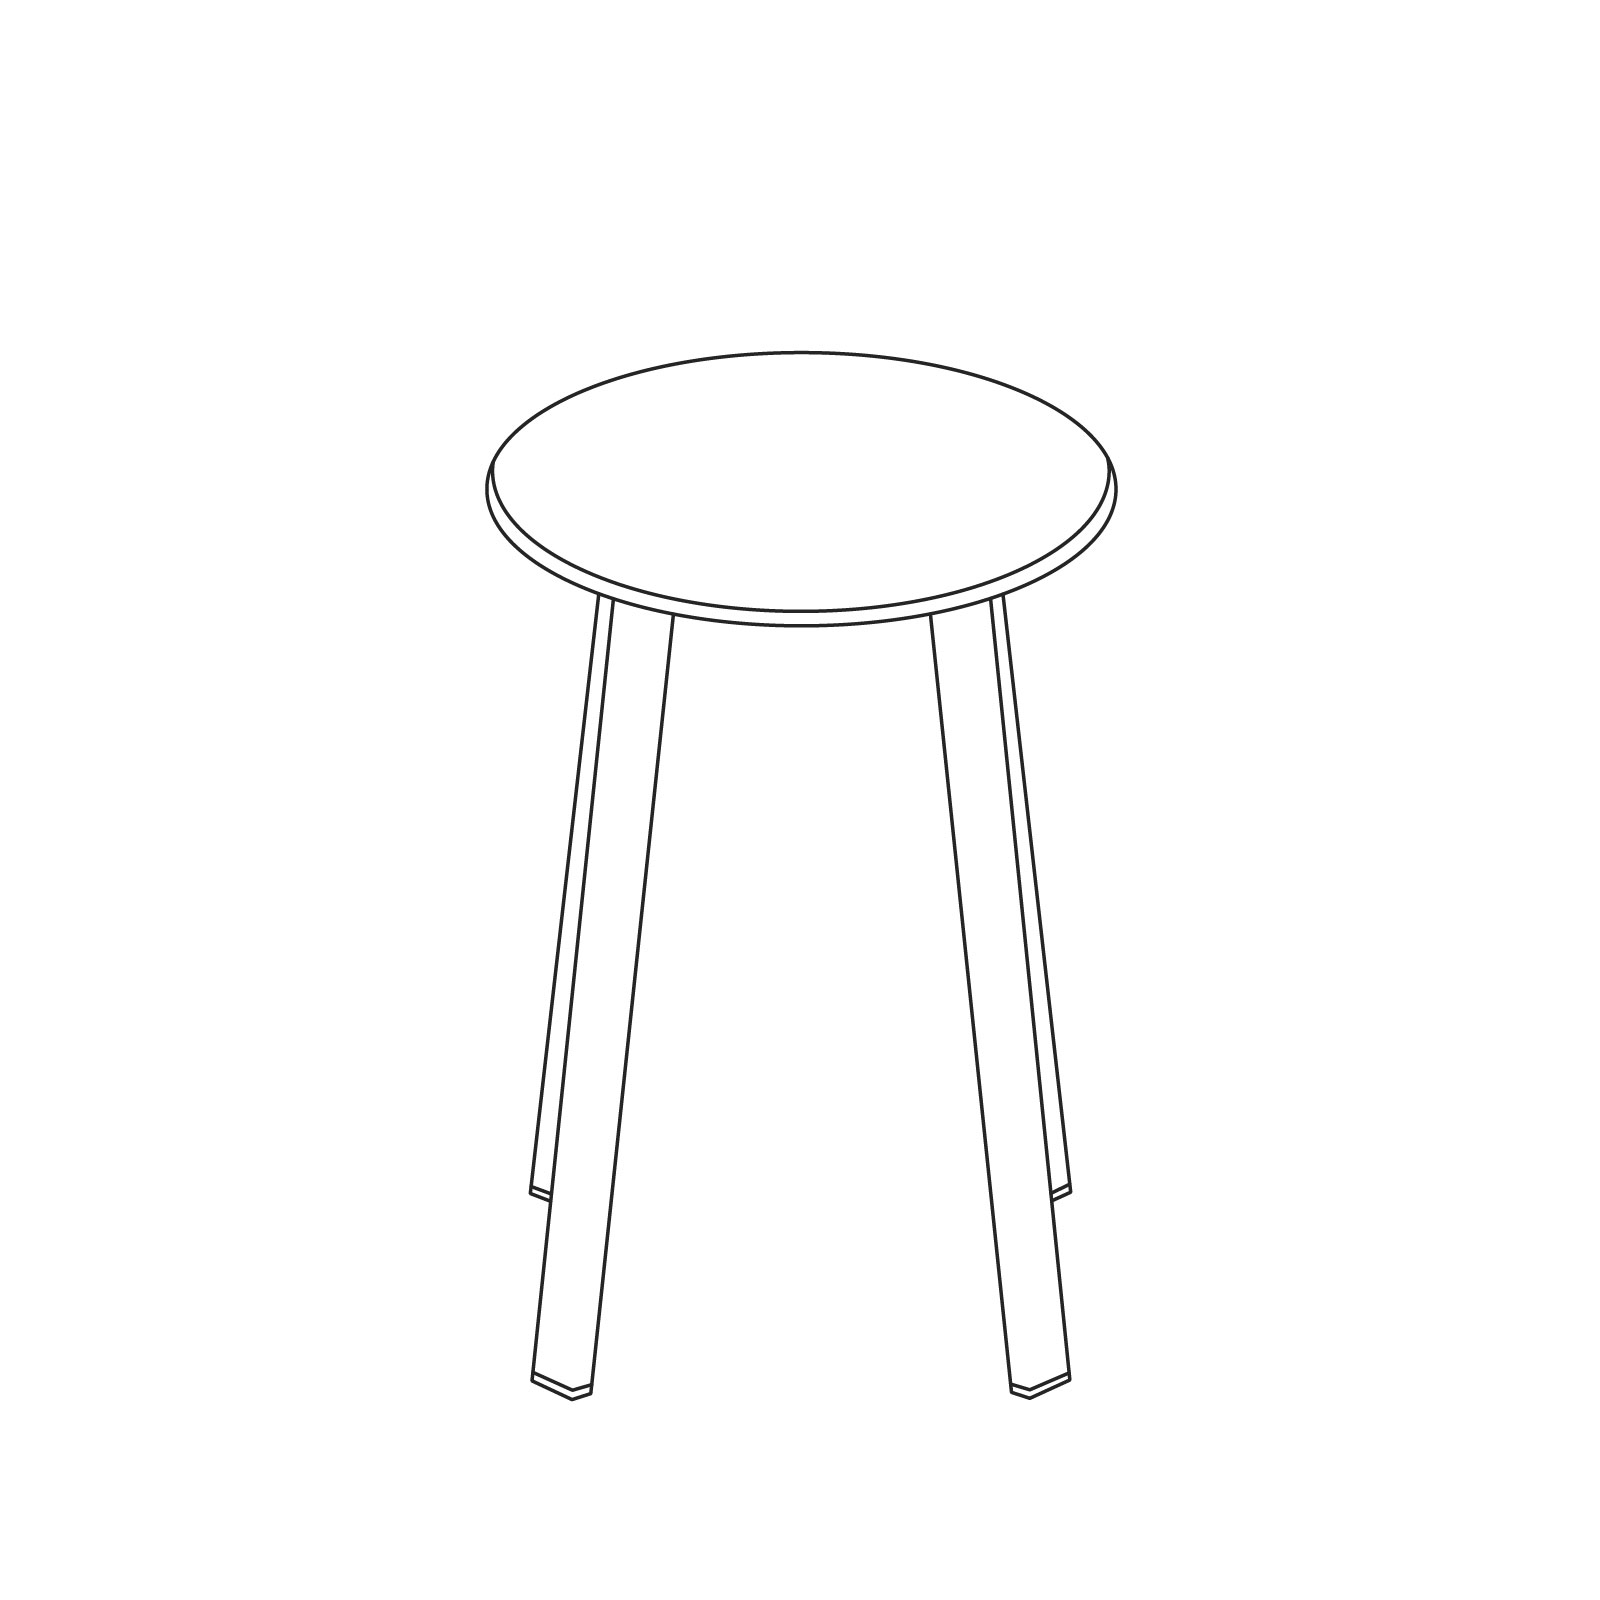 A line drawing of Revolver Stool–Low.